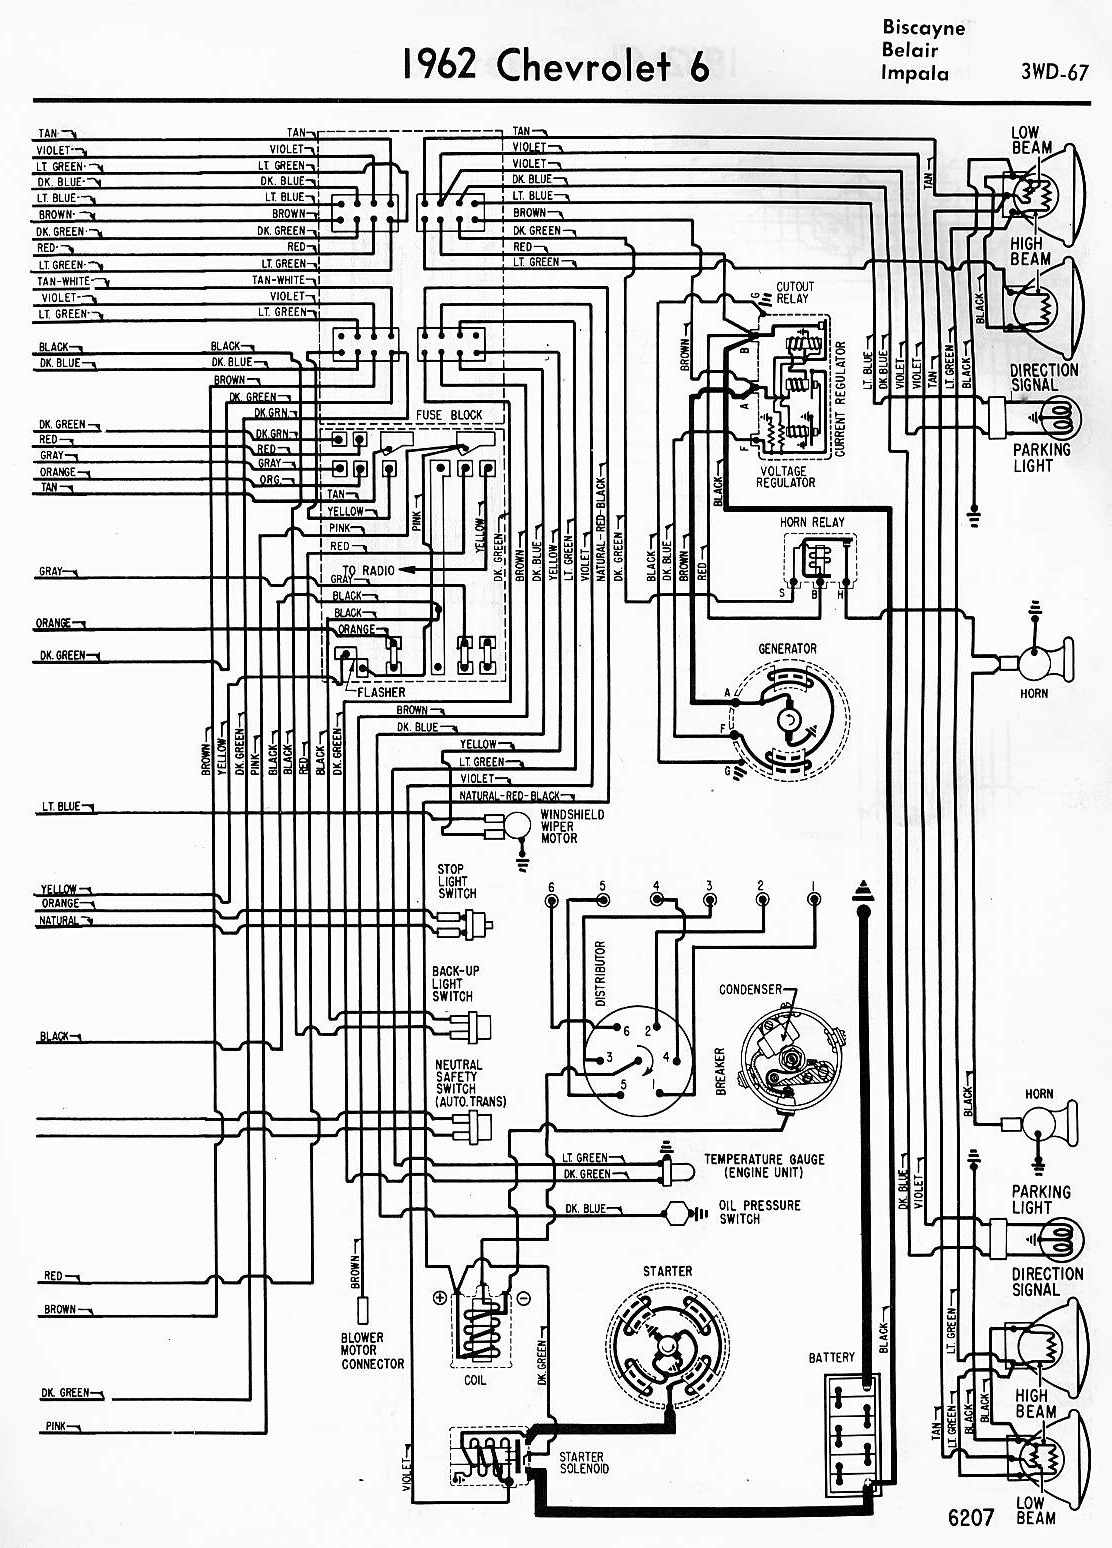 Electrical+Wiring+Diagram+Of+1964+Chevrolet+6 electrical wiring diagram of 1962 chevrolet 6 all about wiring  at eliteediting.co